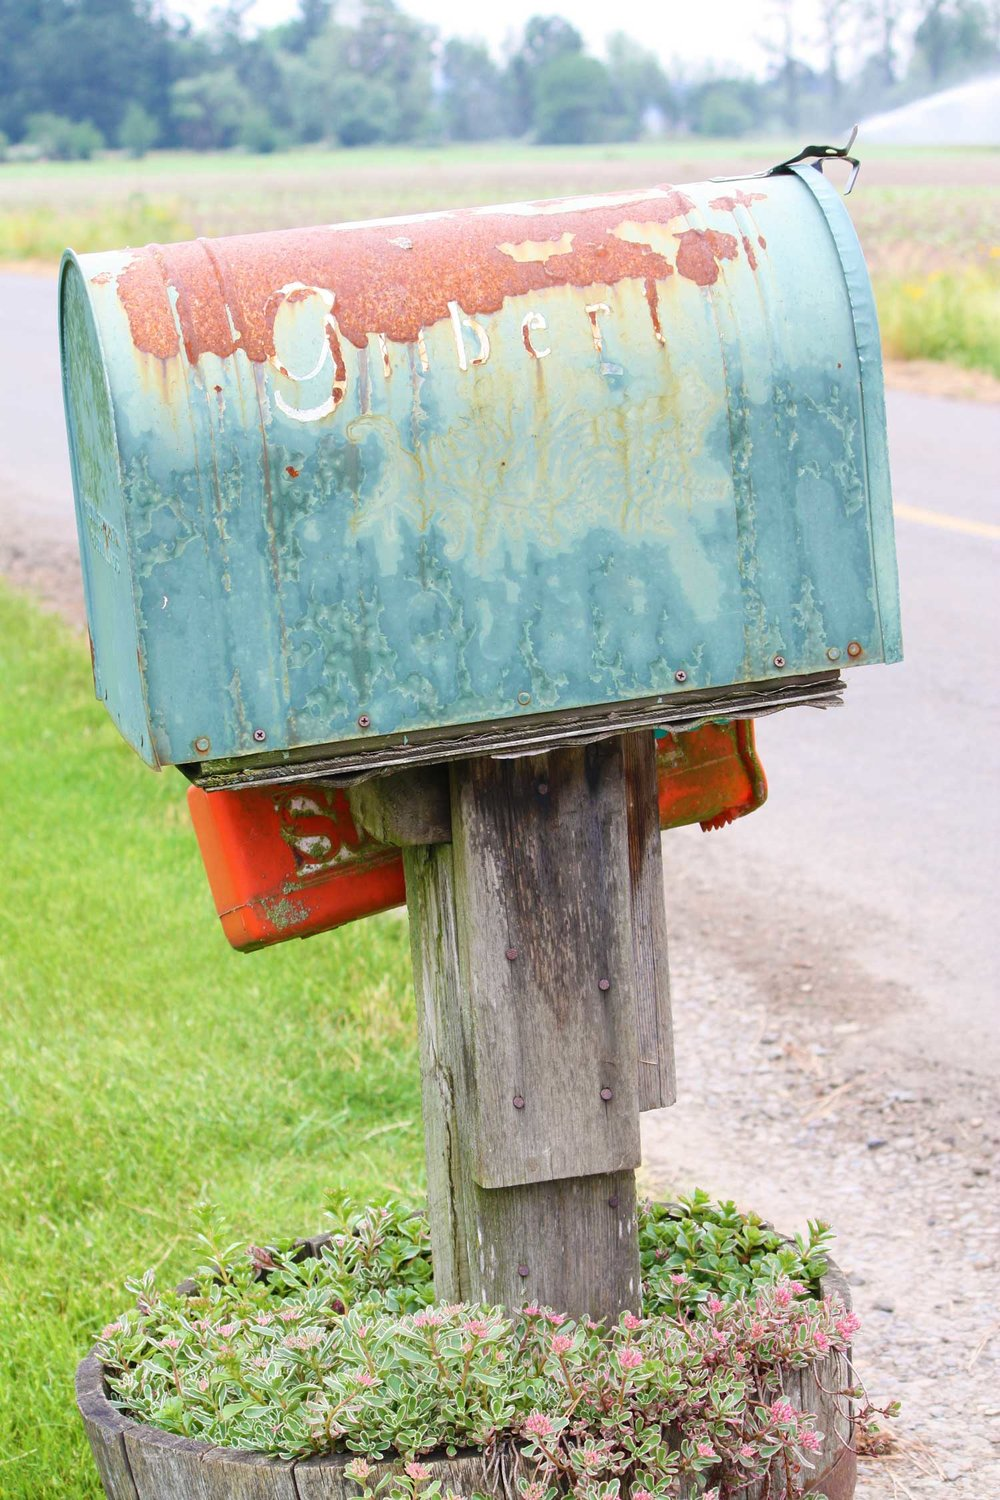 Uncle-Tim's-Mail-Box_adj_web.jpg